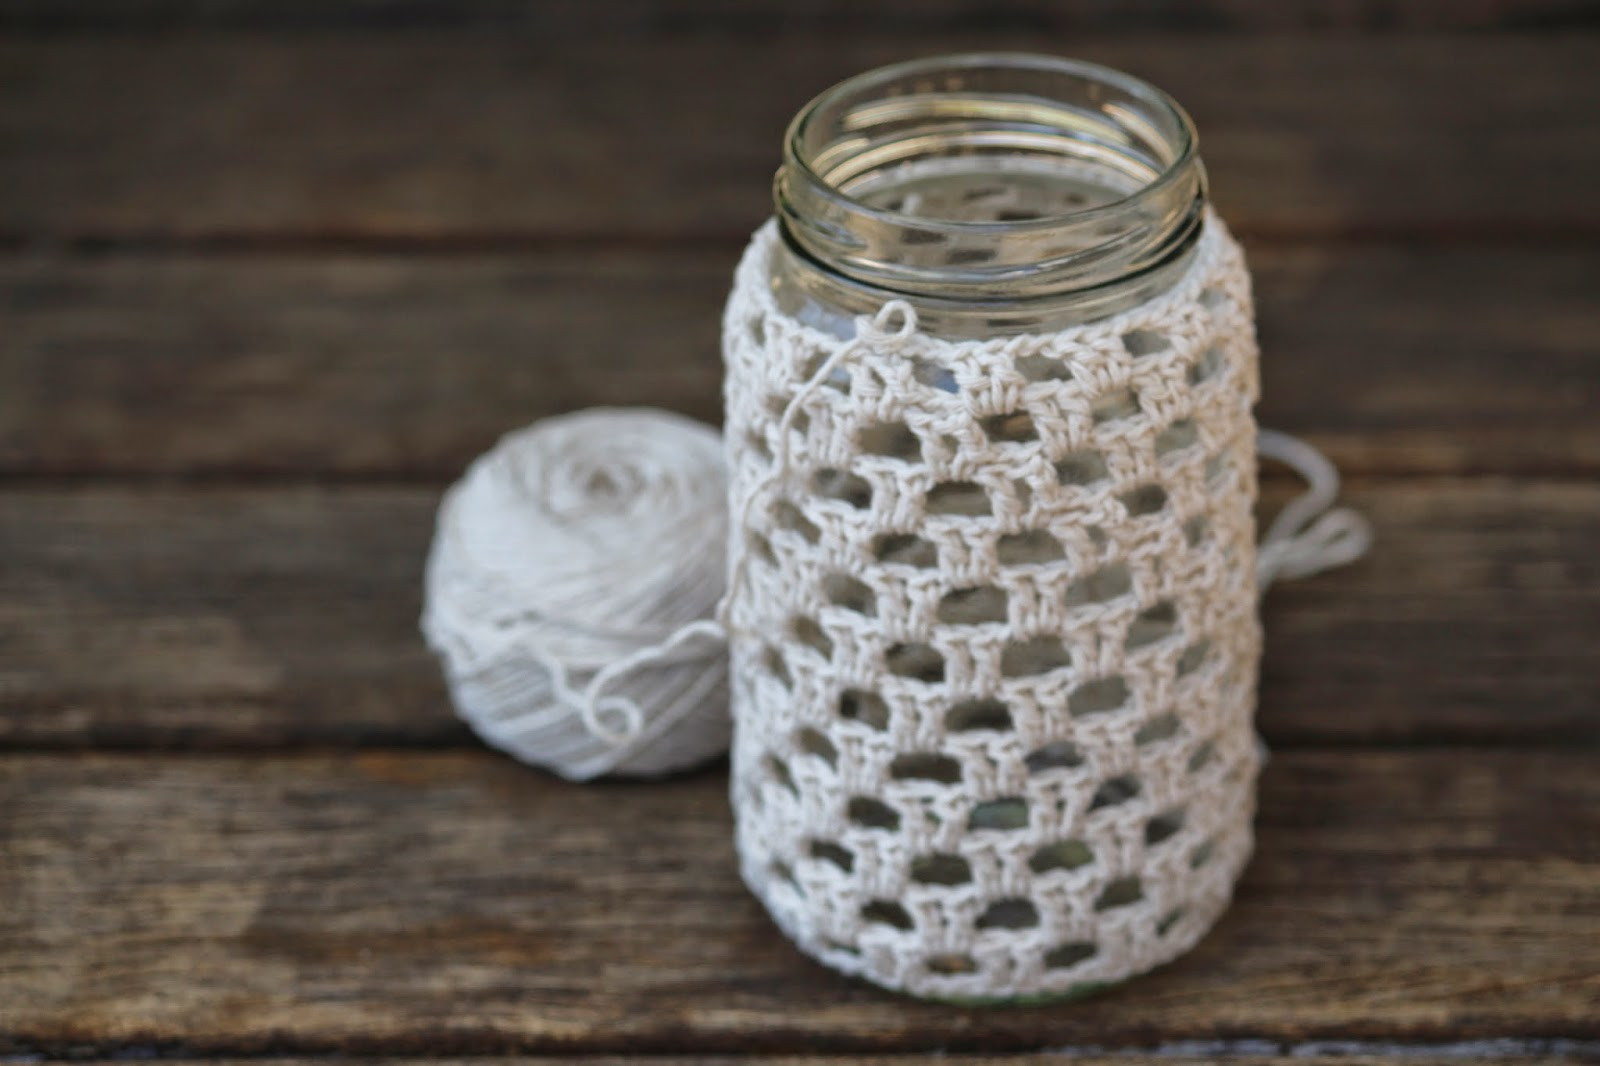 Crochet Patterns Jar Lids : ... of the initial Ch 2. Check the fit on your jar after every few rows